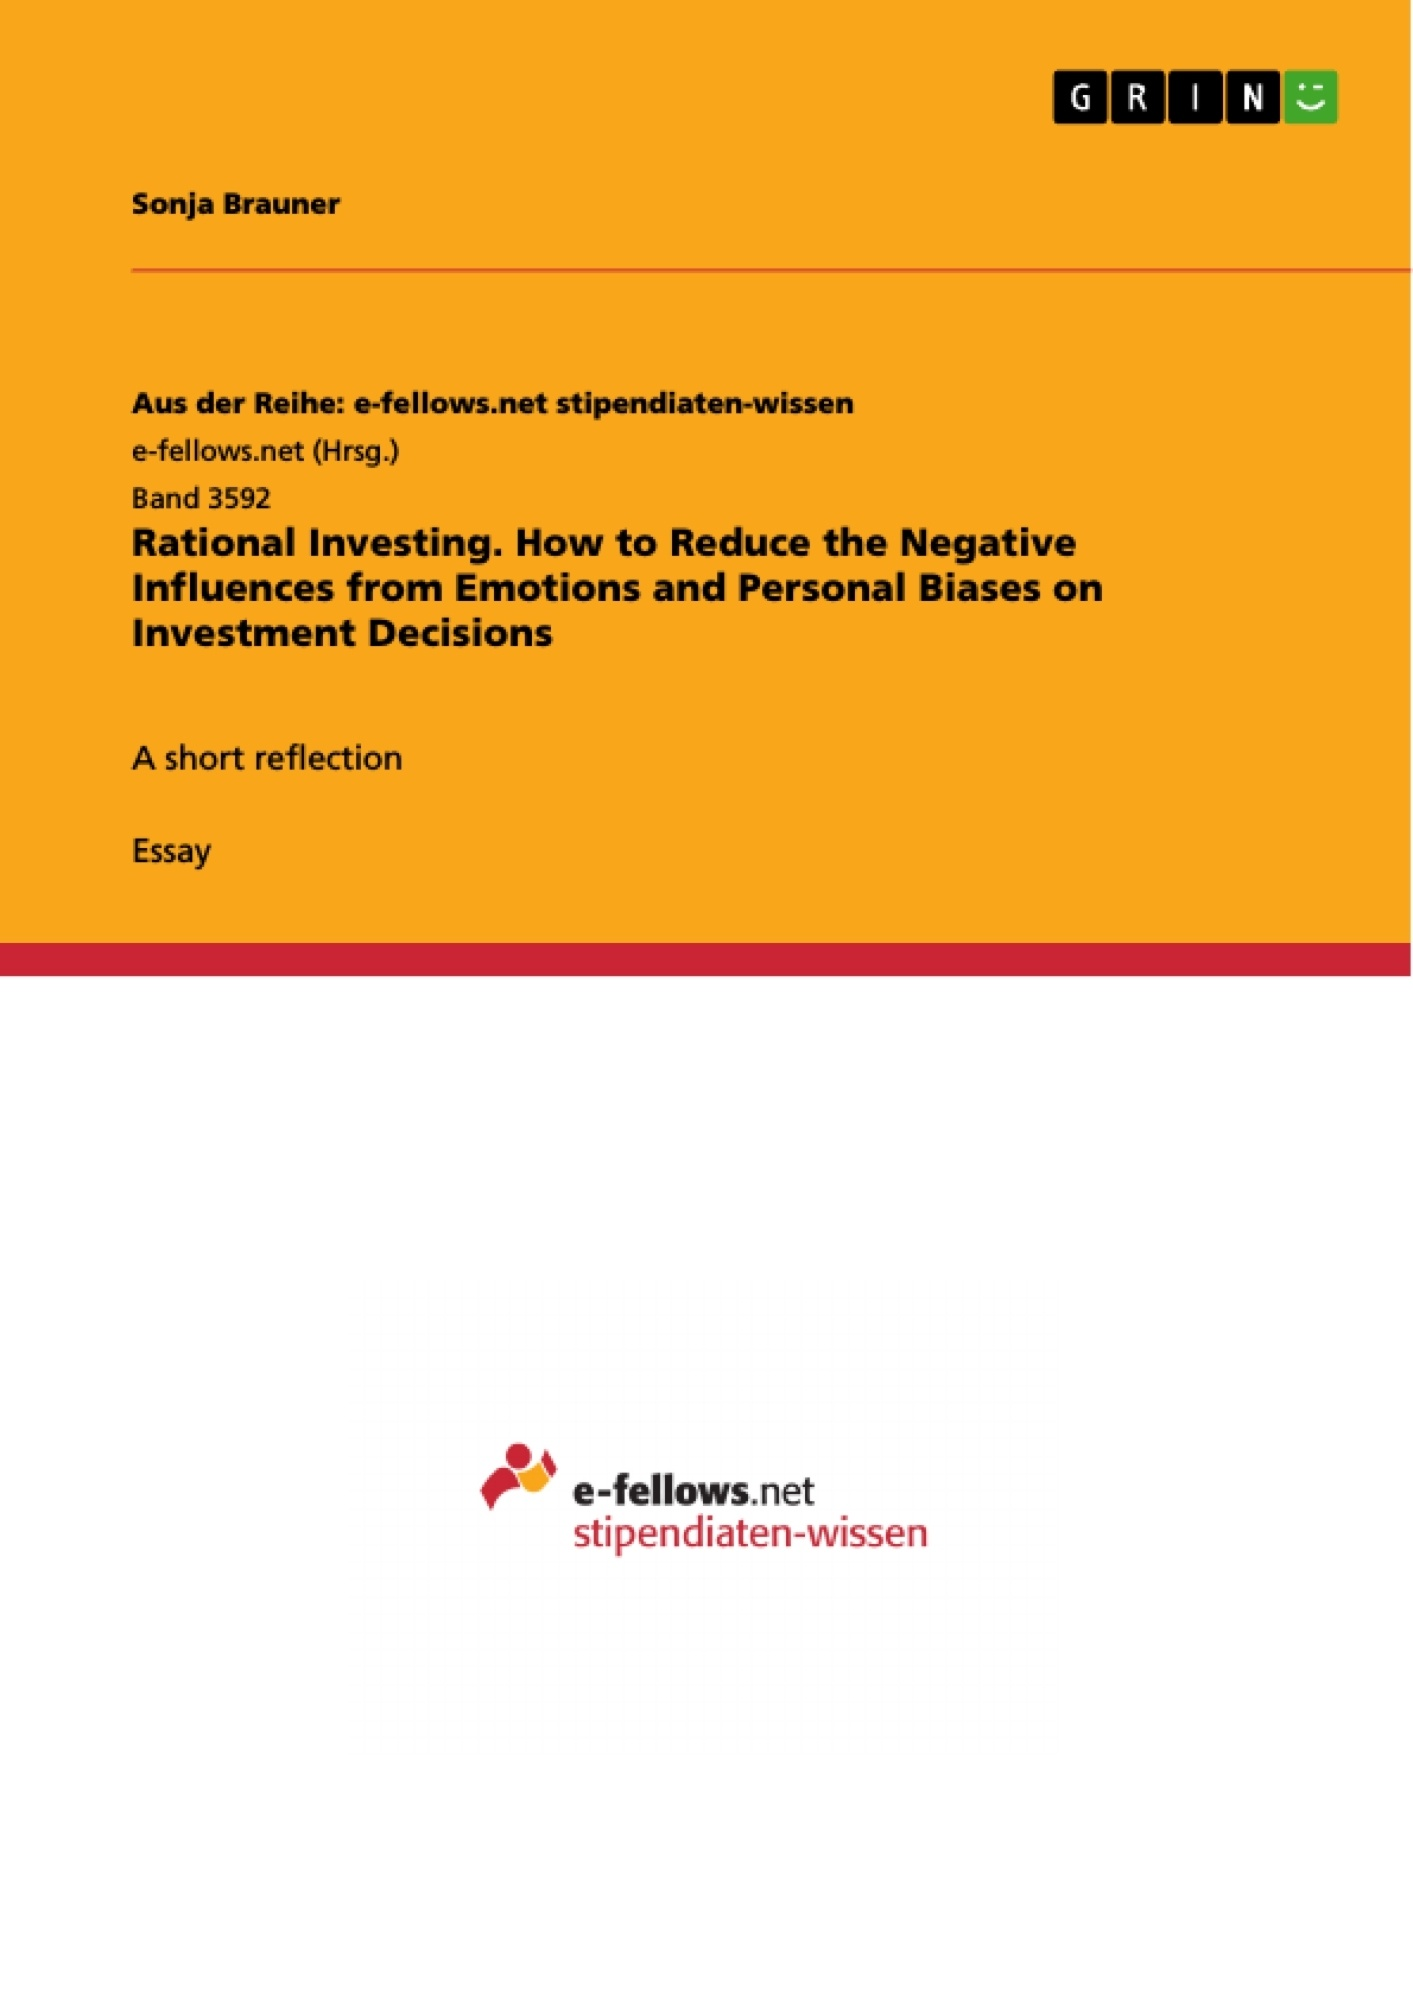 Title: Rational Investing. How to Reduce the Negative Influences from Emotions and Personal Biases on Investment Decisions